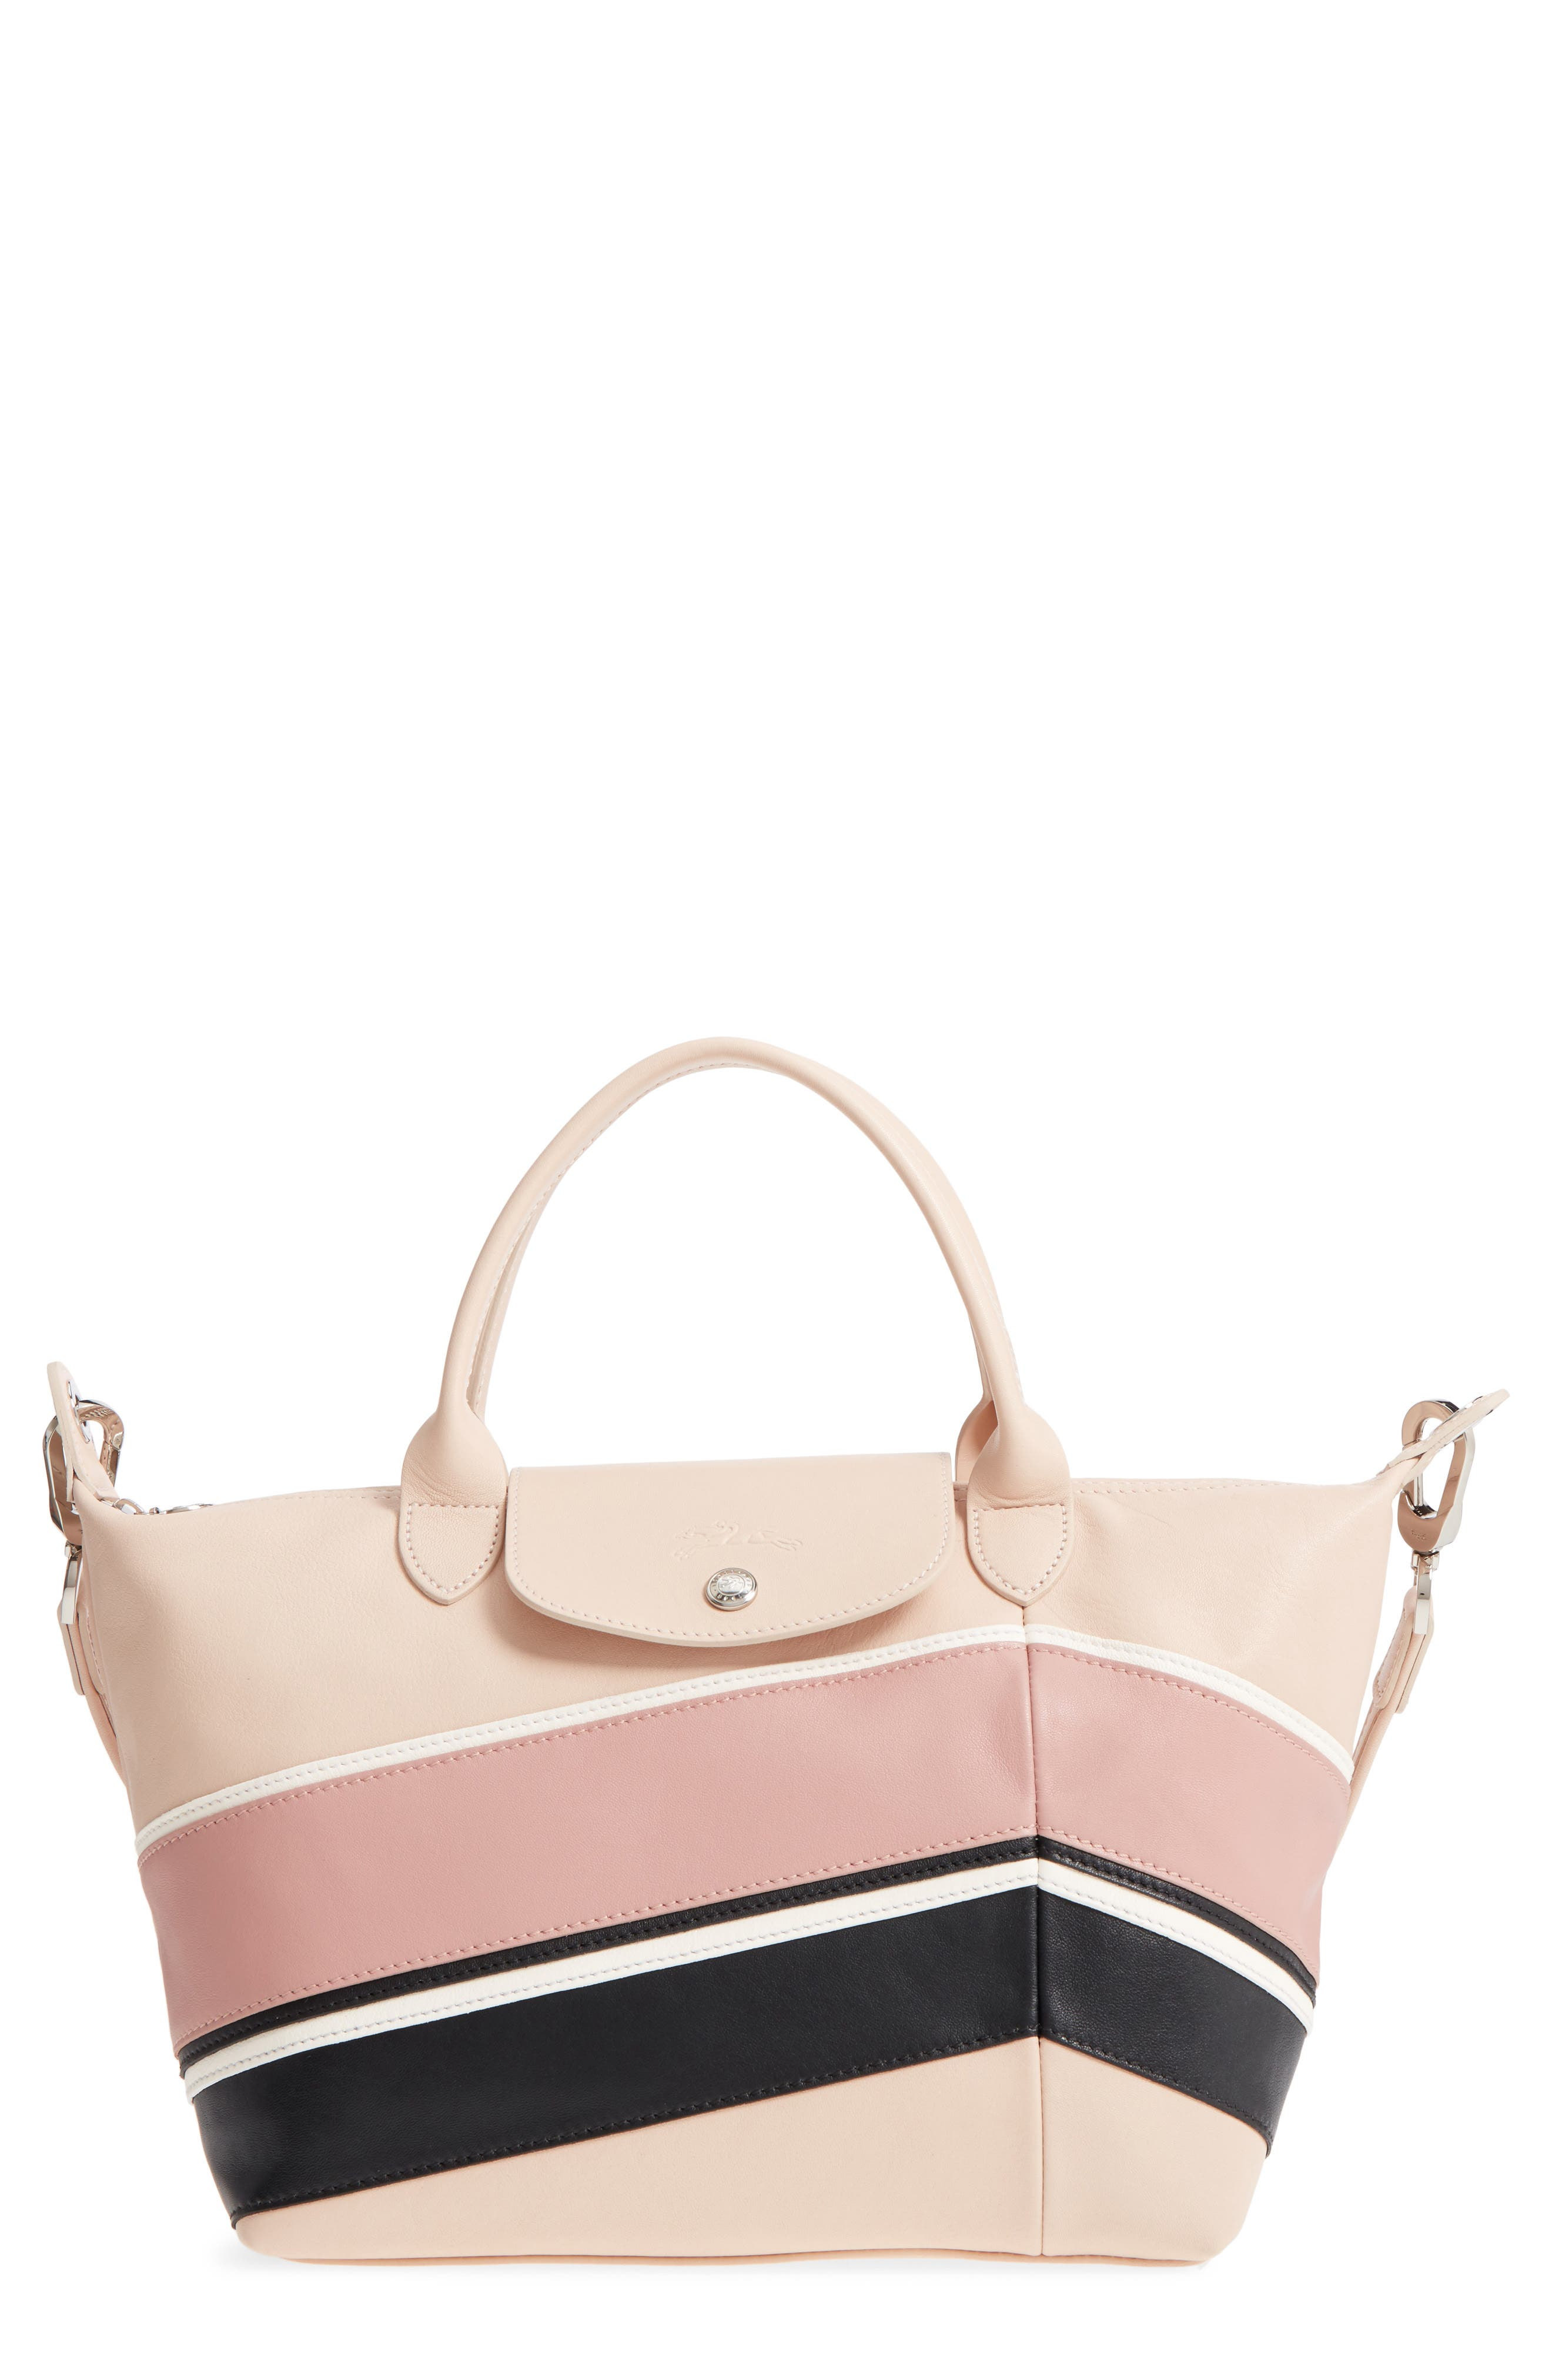 Longchamp Small Le Pliage Cuir - Chevron Leather Top Handle Tote